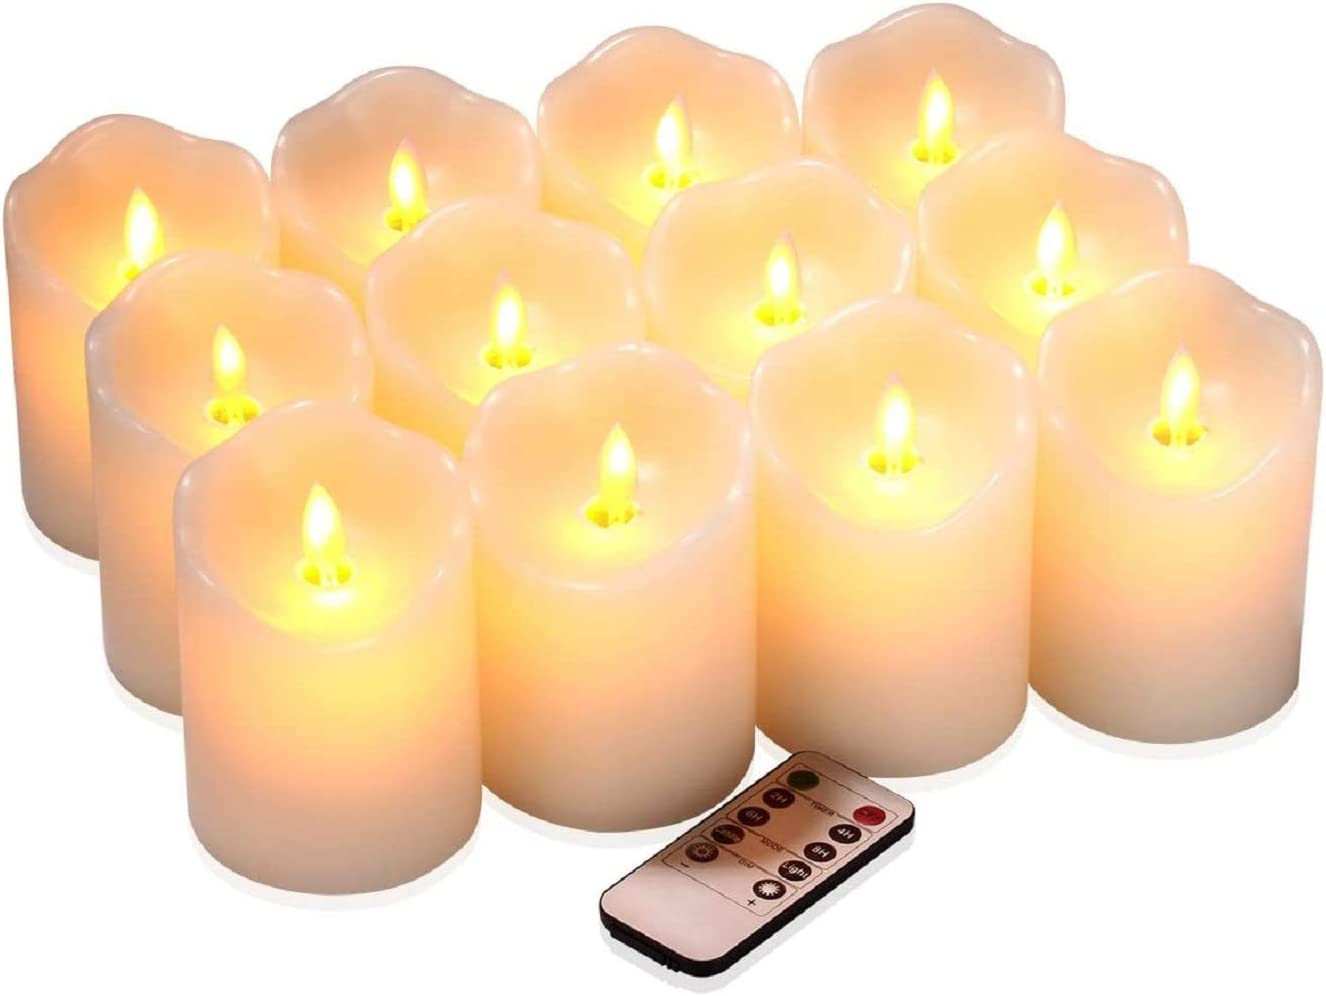 qinxiang Flameless Candles Flickering LED Candles Set of 12 D 3 X H 4 Ivory Real Wax Pillar Battery Operated Candles with Dancing LED Flame 10-Key Remote and Cycling 24 Hours Timer